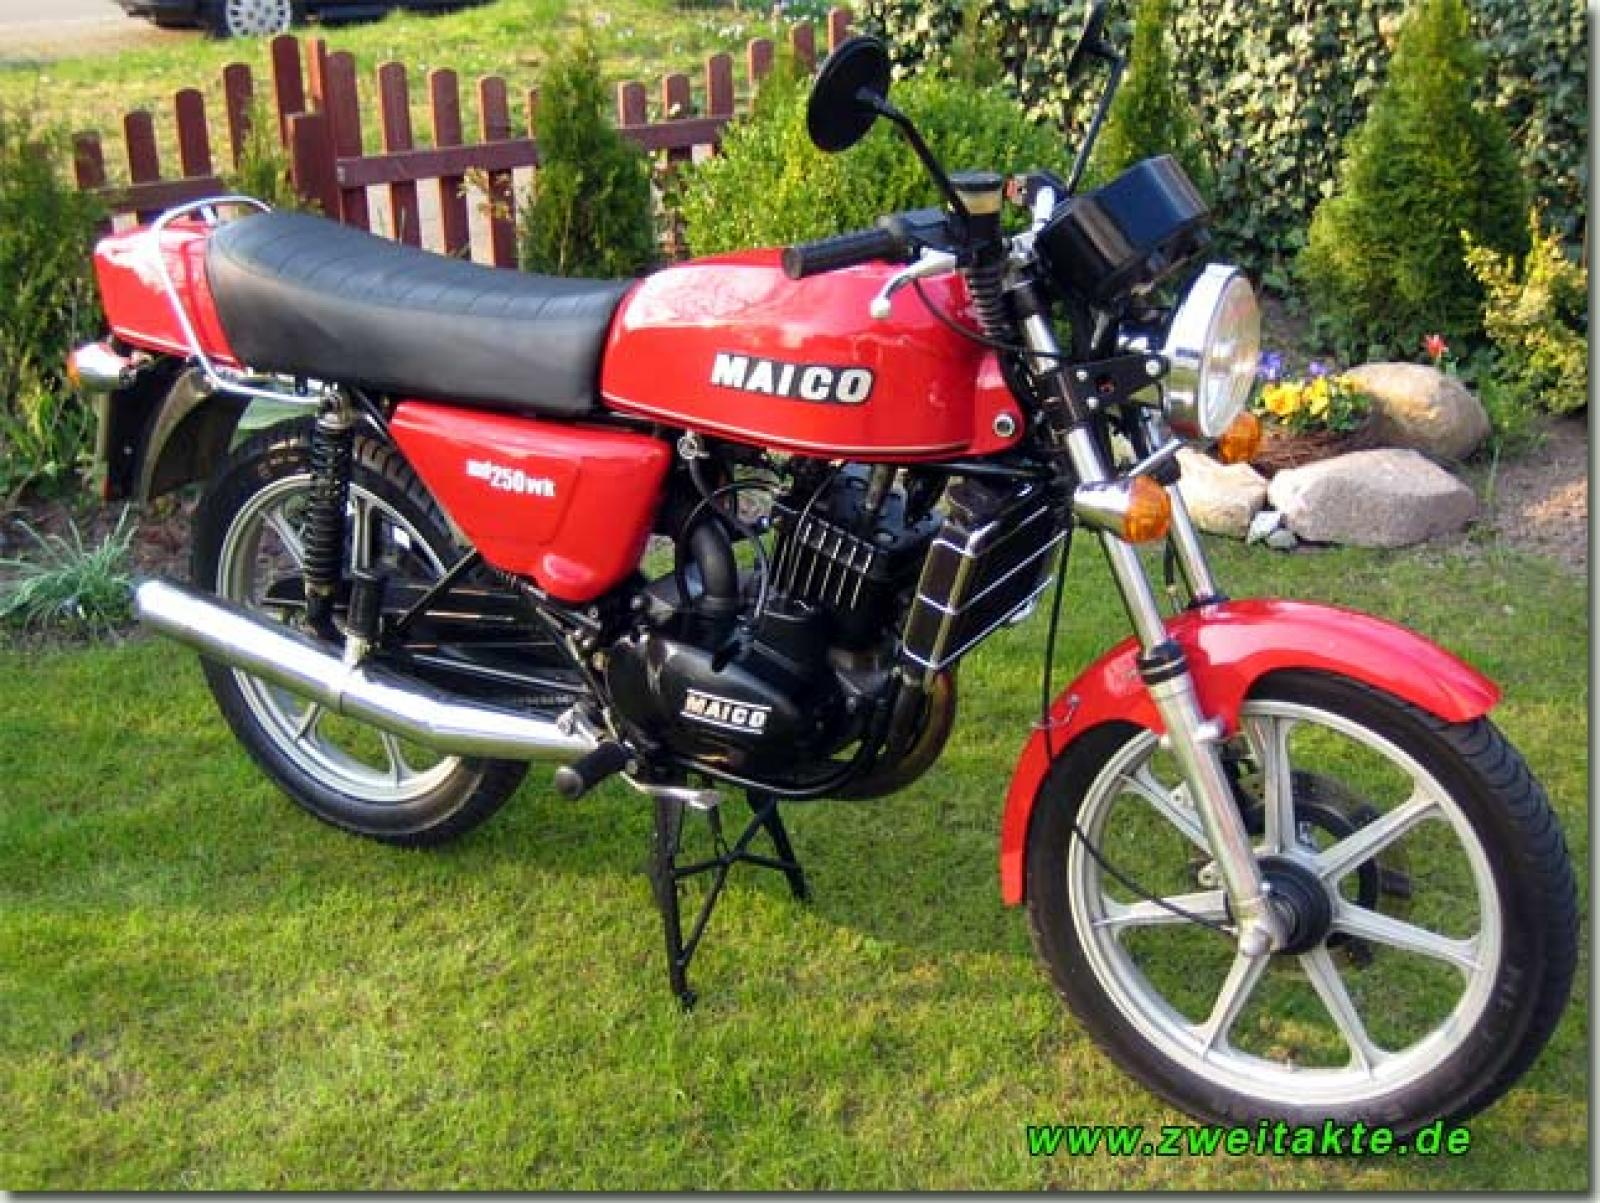 Maico MD 250 WK images #102803